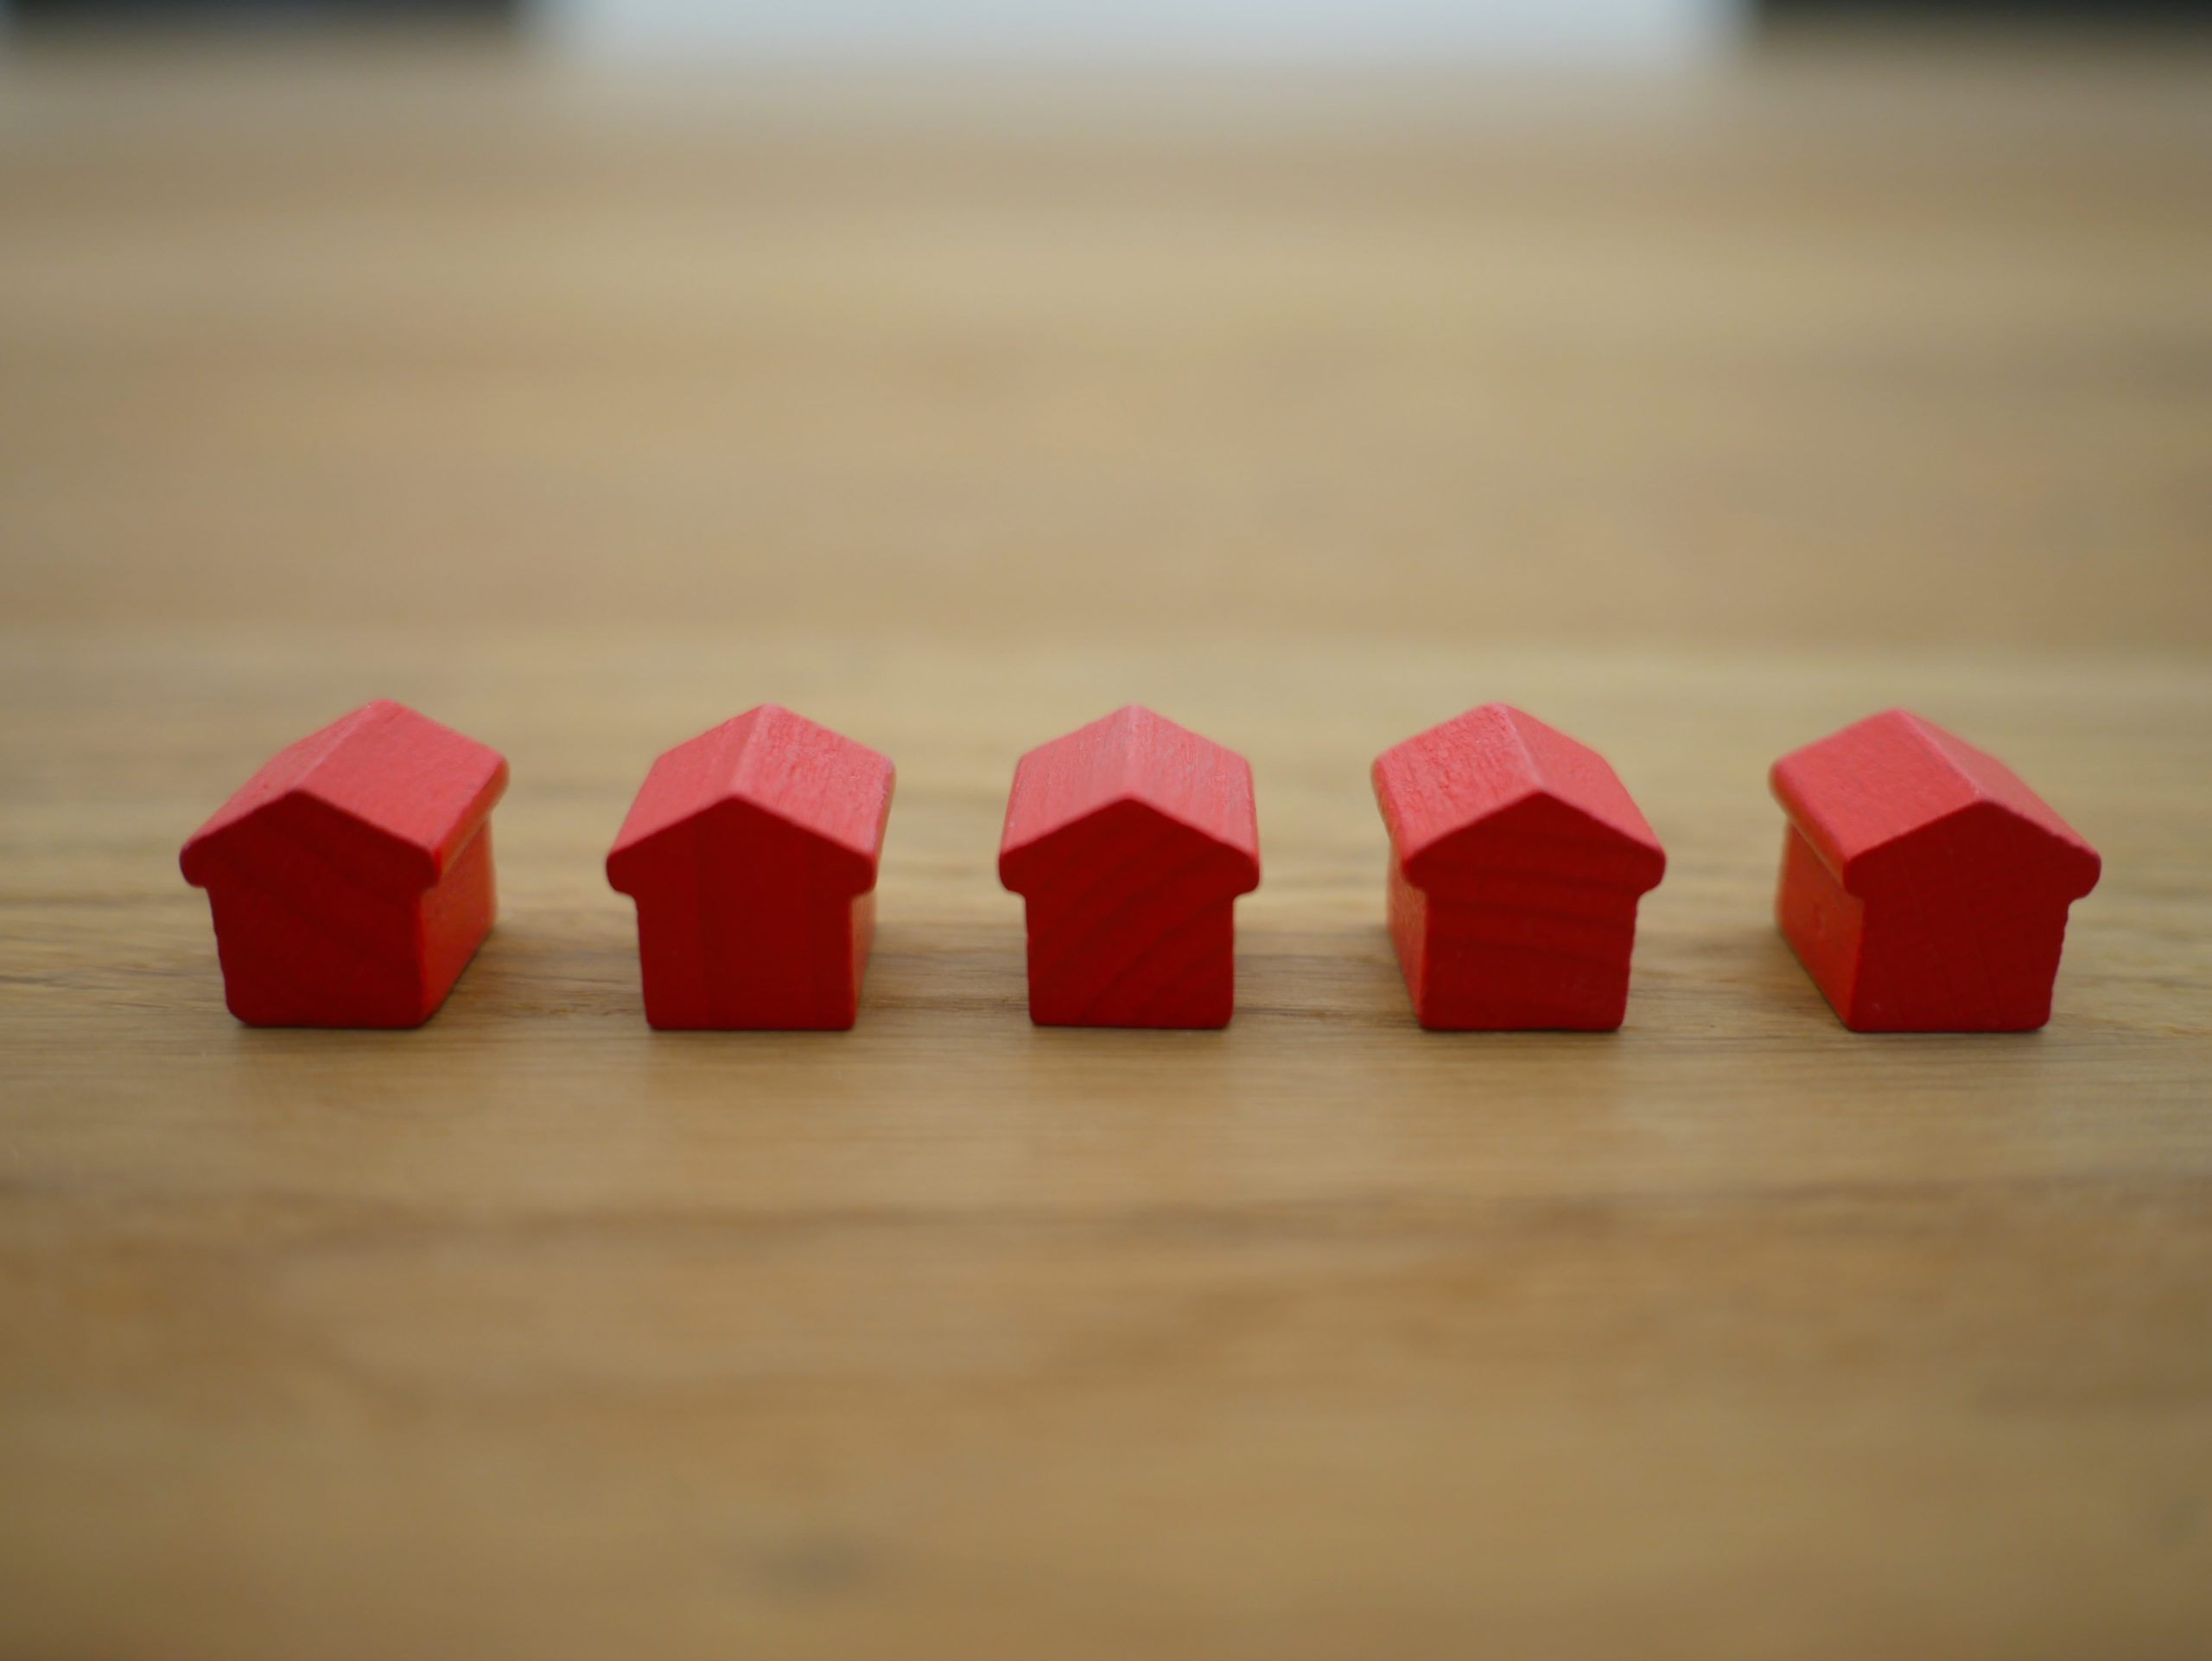 5 little red houses, The 203(k) FHA Loan: Adding on Your Rehab Costs to Your Loan